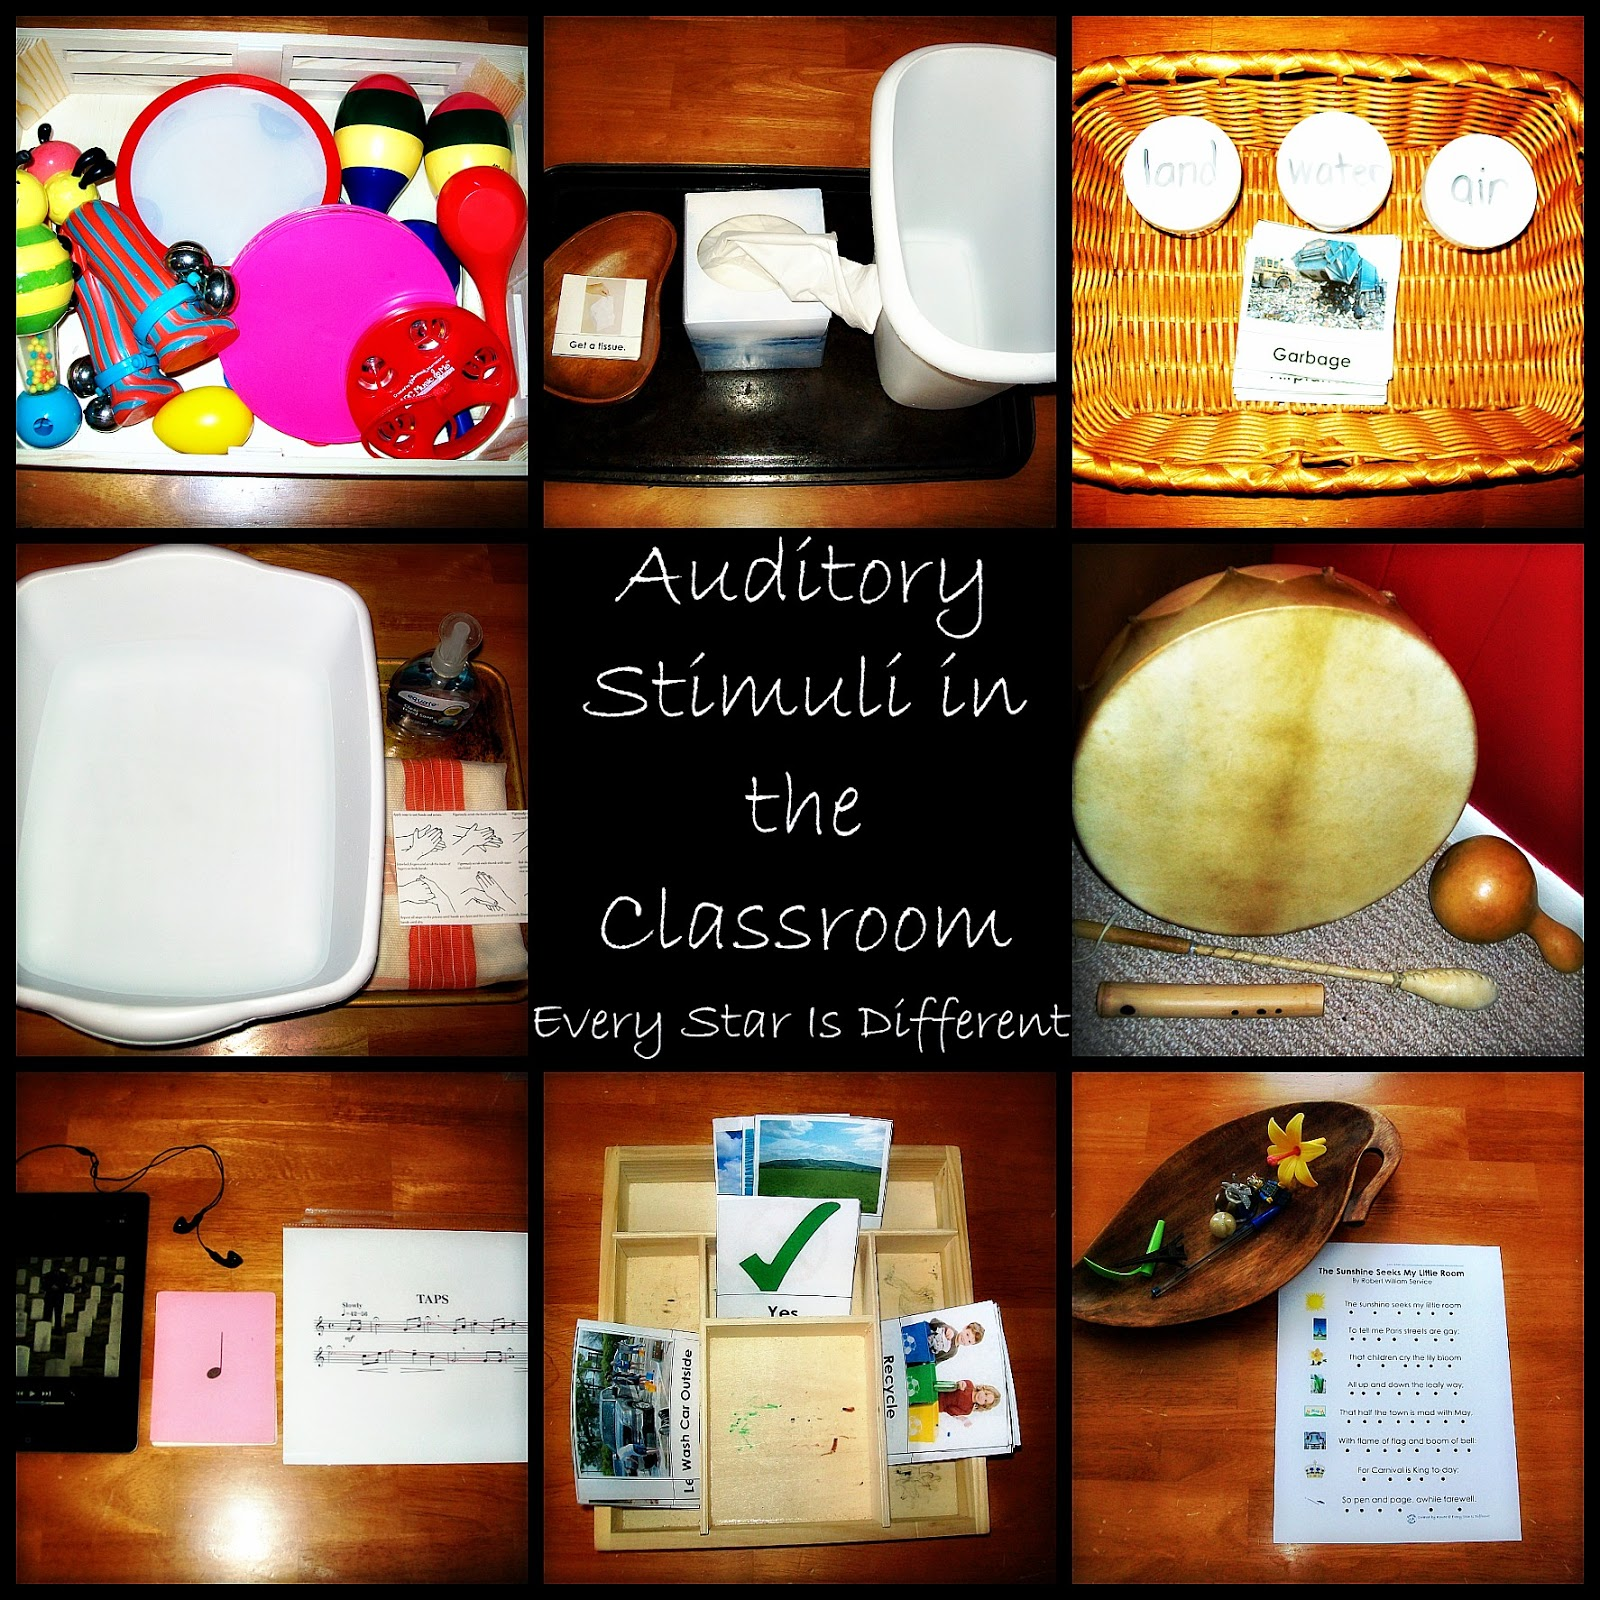 Auditory Stimuli in the Classroom